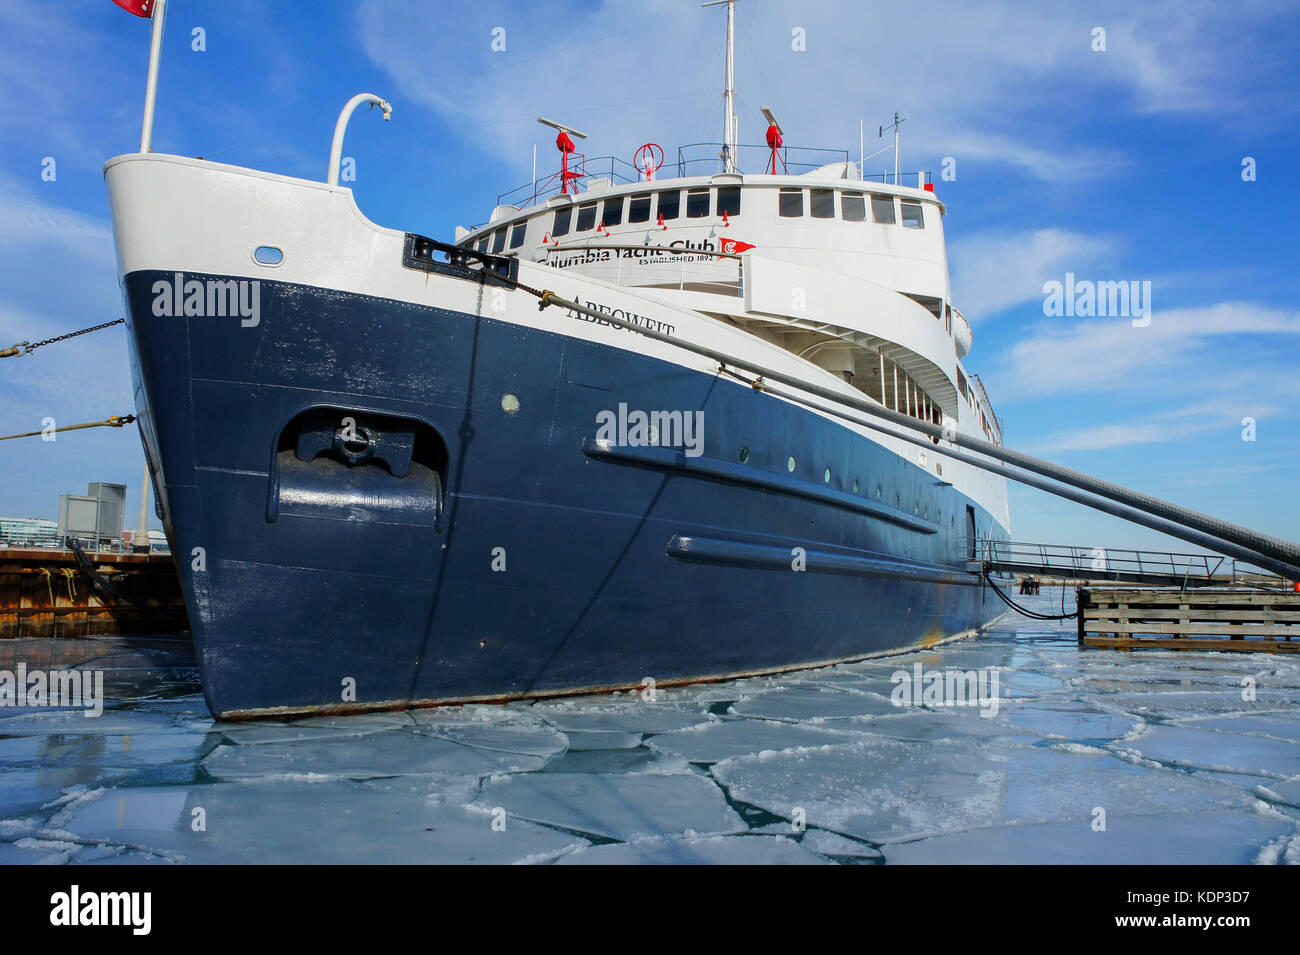 Chicago, JAN 31: Big ship dock by the beautiful DuSable Harbor on JAN 31, 2012 at Millennium Park, Chicago, Illinois, - Stock Image